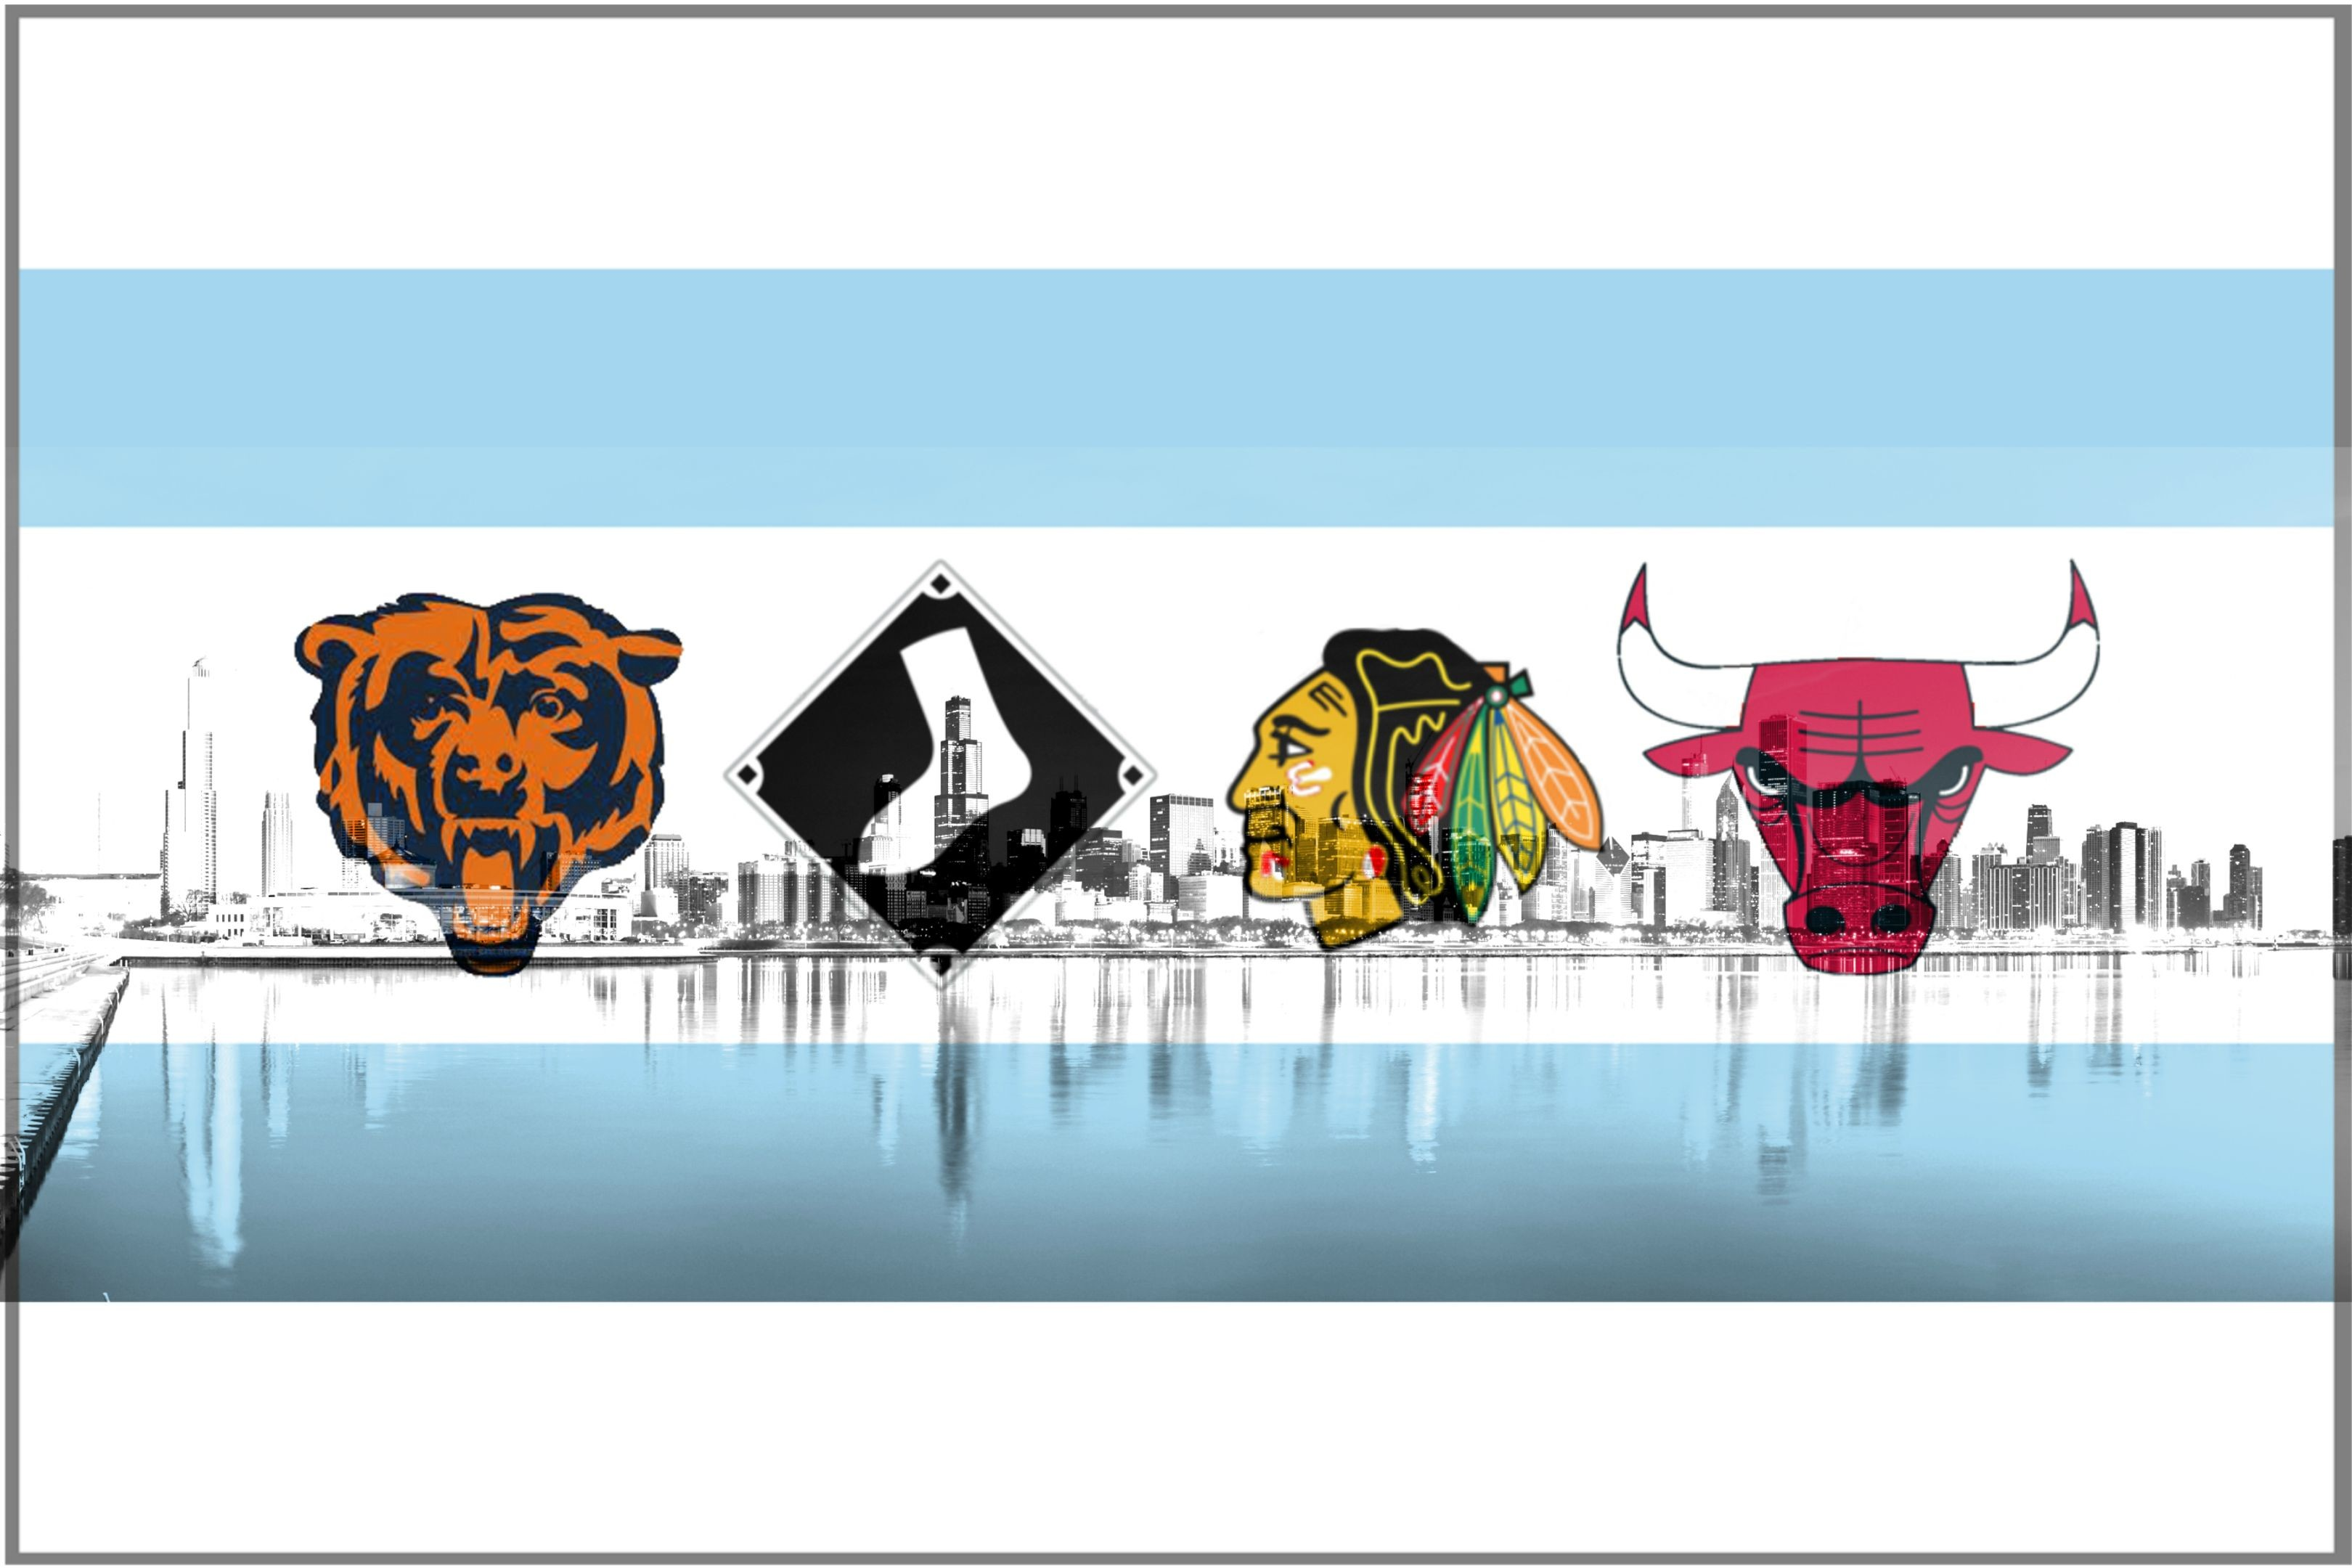 Chicago Sports Wallpaper Iphone 6: Chicago Flag IPhone Wallpaper (65+ Images